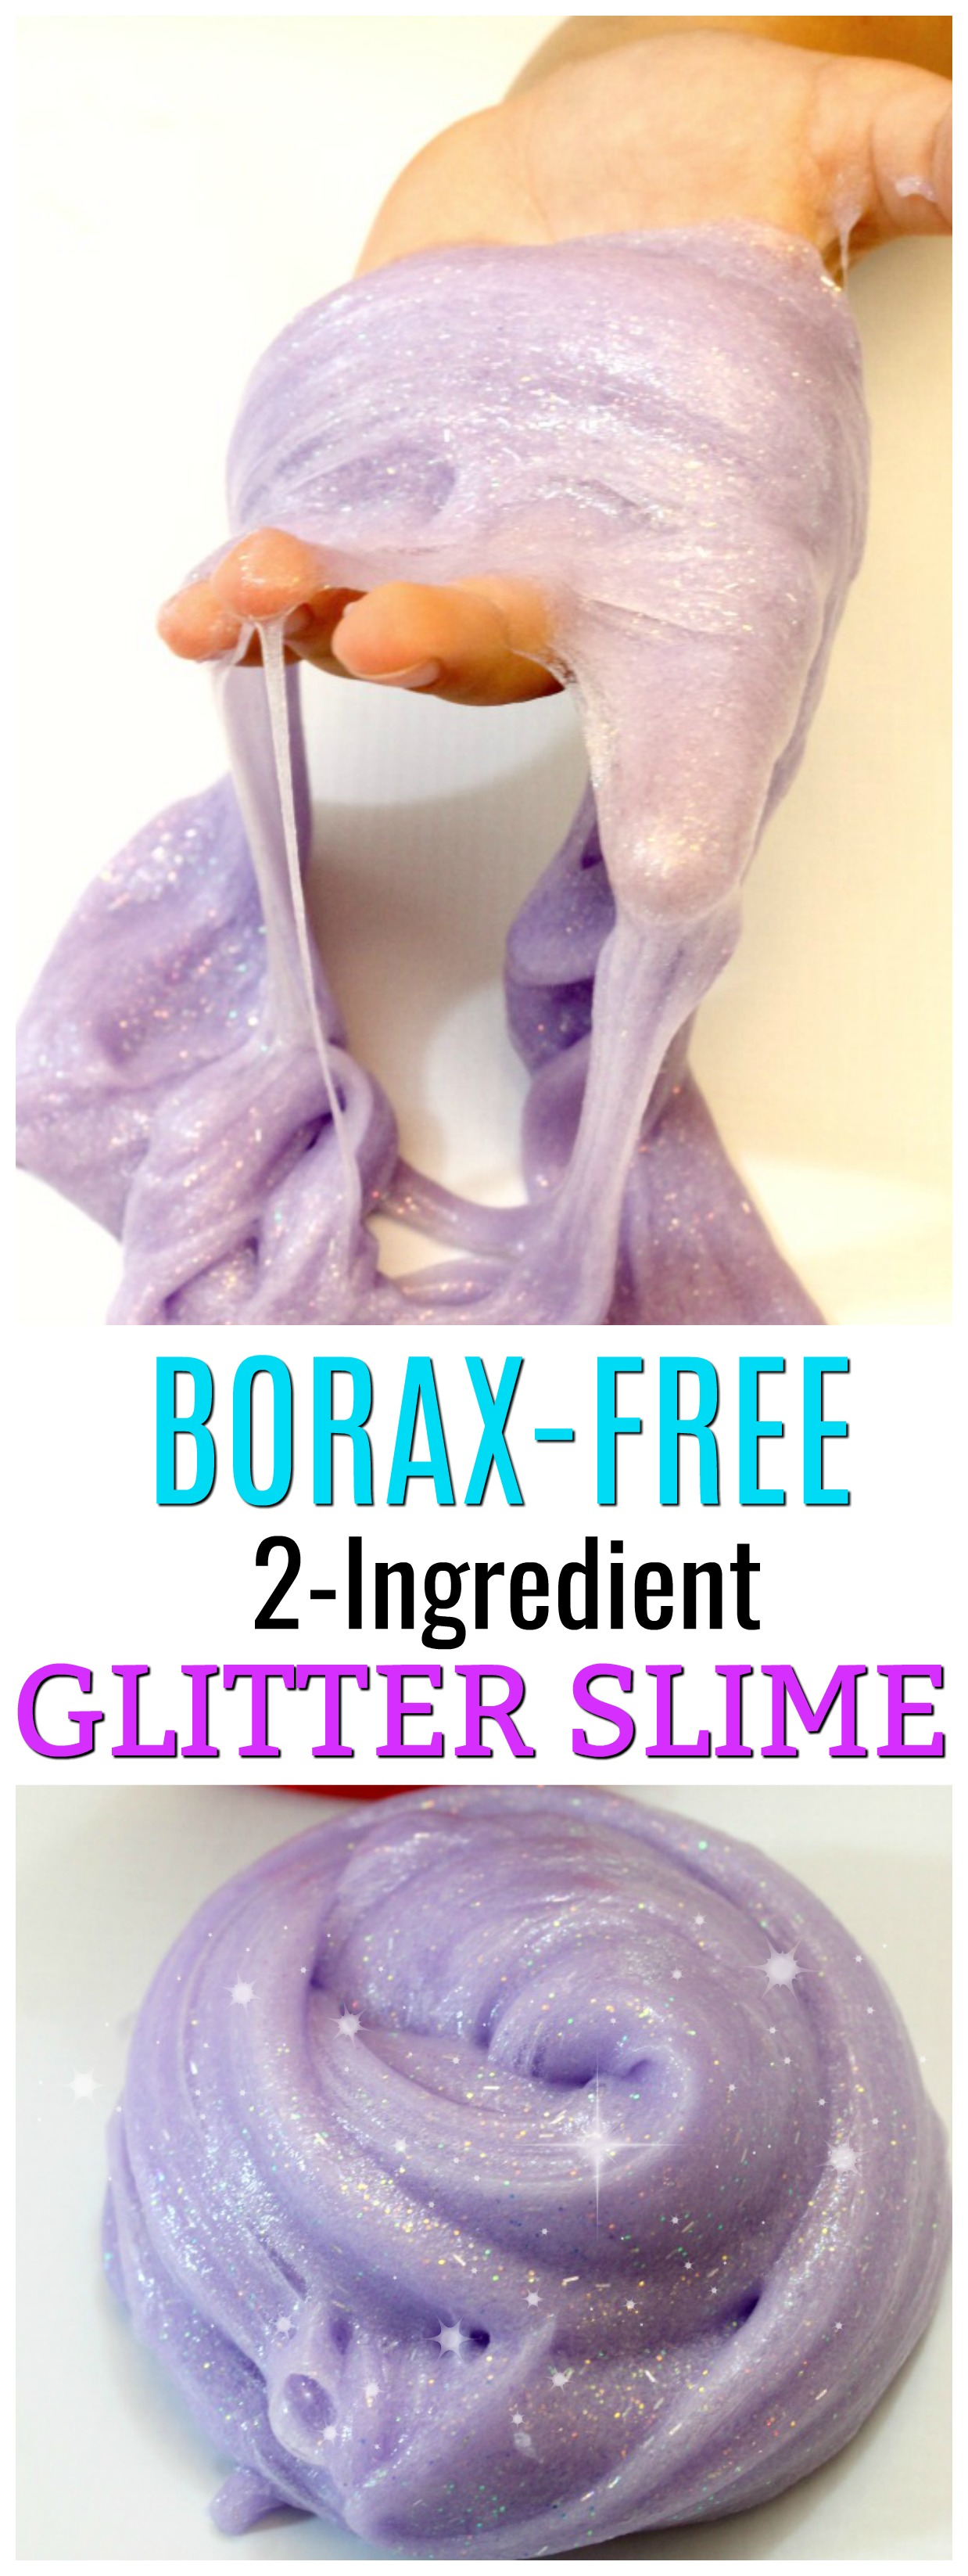 Make Glitter Slime with No Borax! The BEST Glitter Slime ... - photo#40